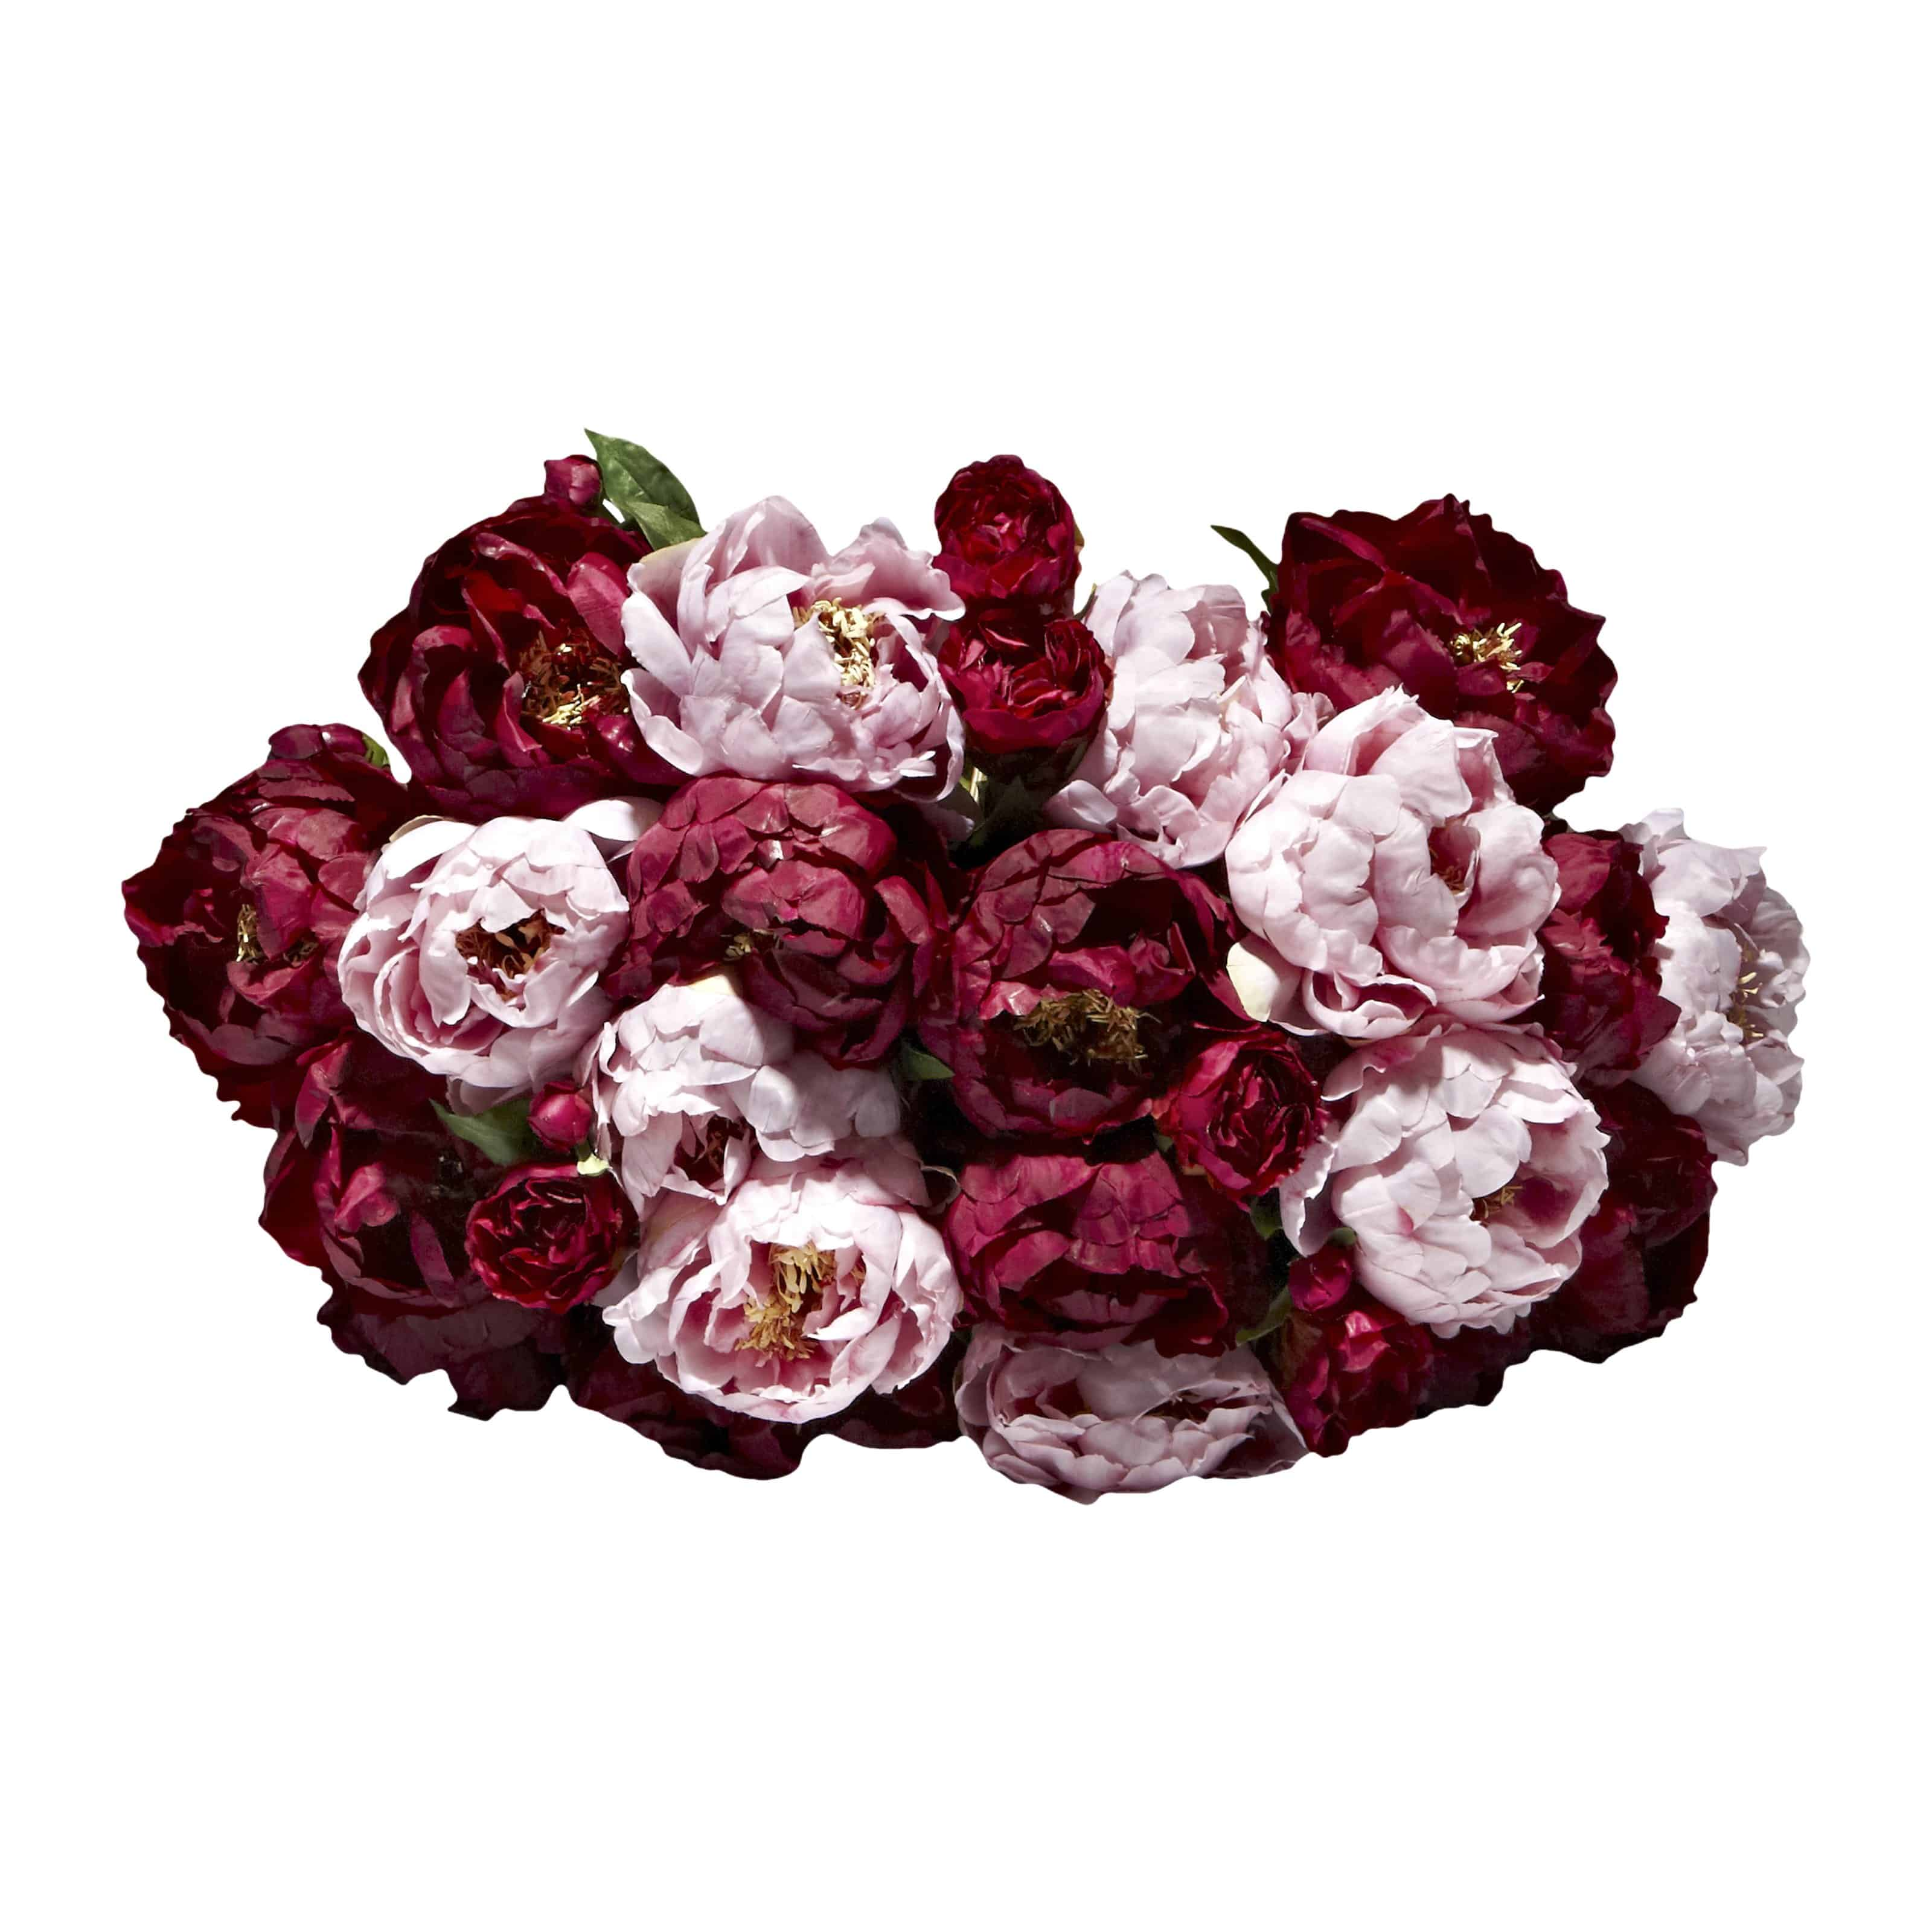 Love our luxurious artificial flower bouquet full of finely detailed large heads on long stem lavender pink and rich silk flower burgundy peonies and buds.